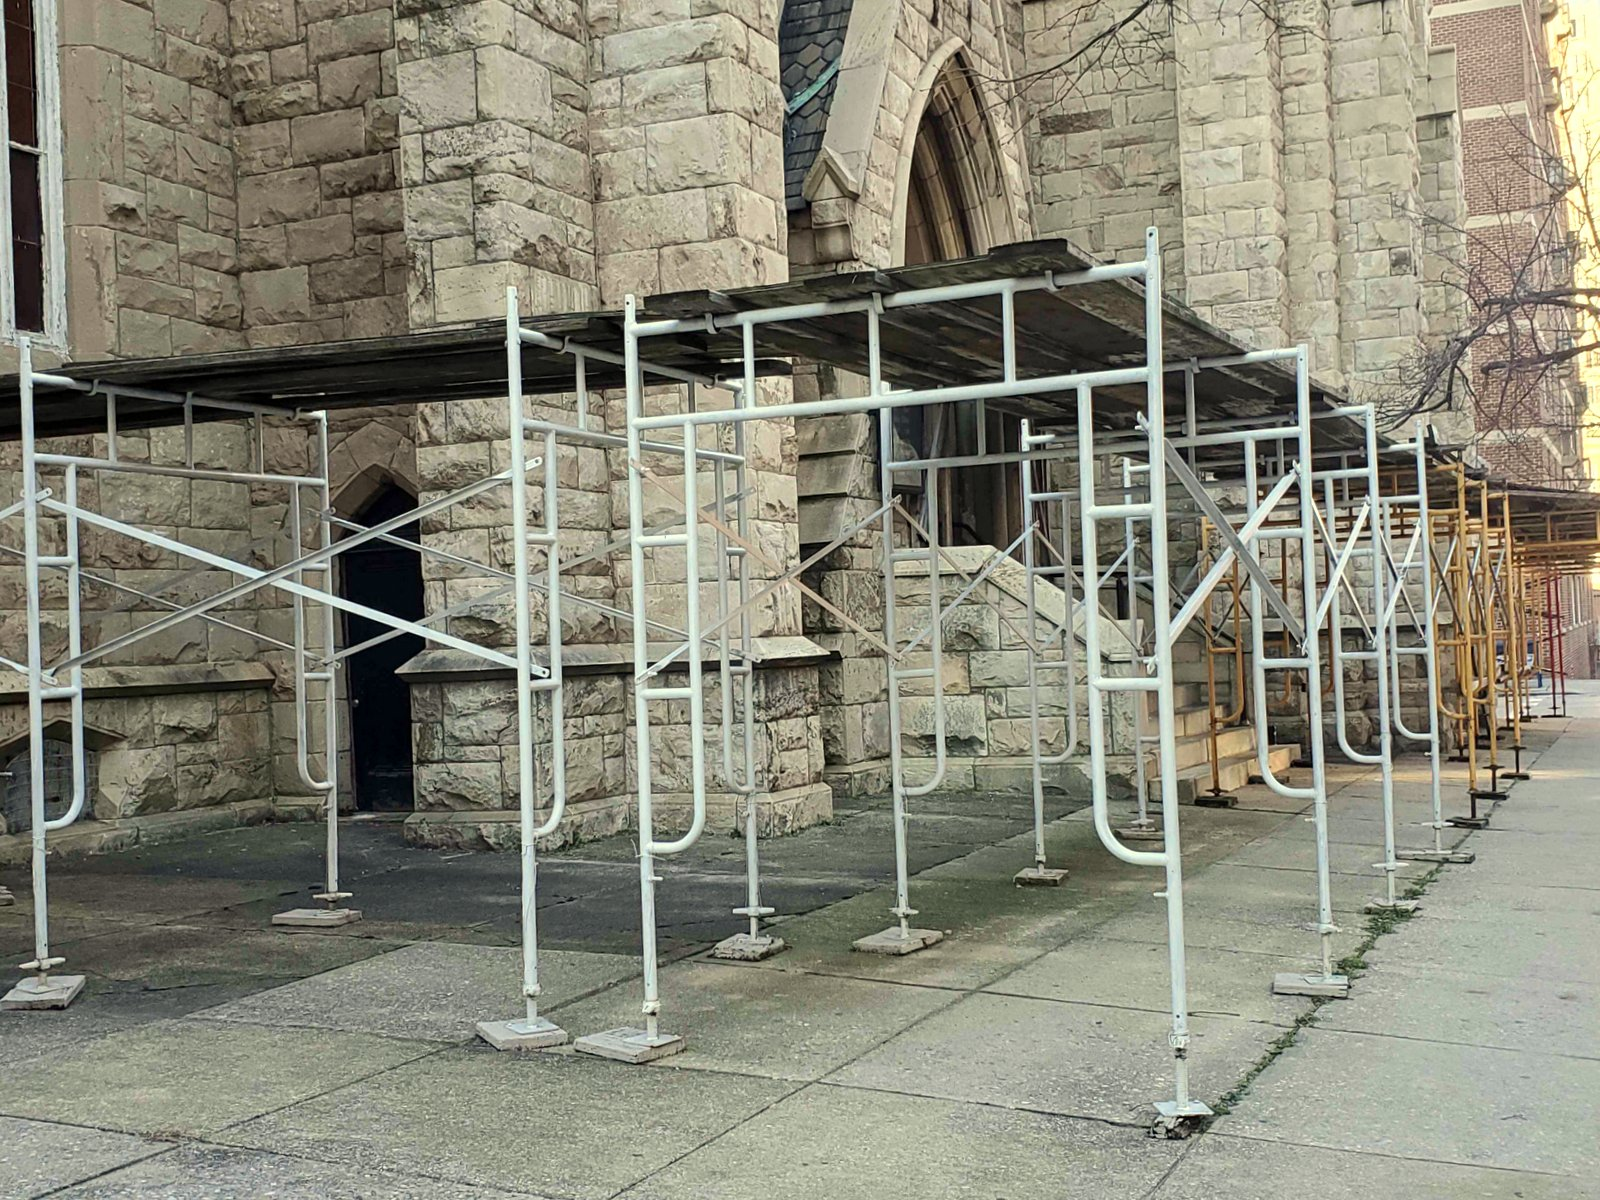 The scaffolding has protected pedestrians from falling tiles and other debris for nearly a decade. (Ed Gtuns)